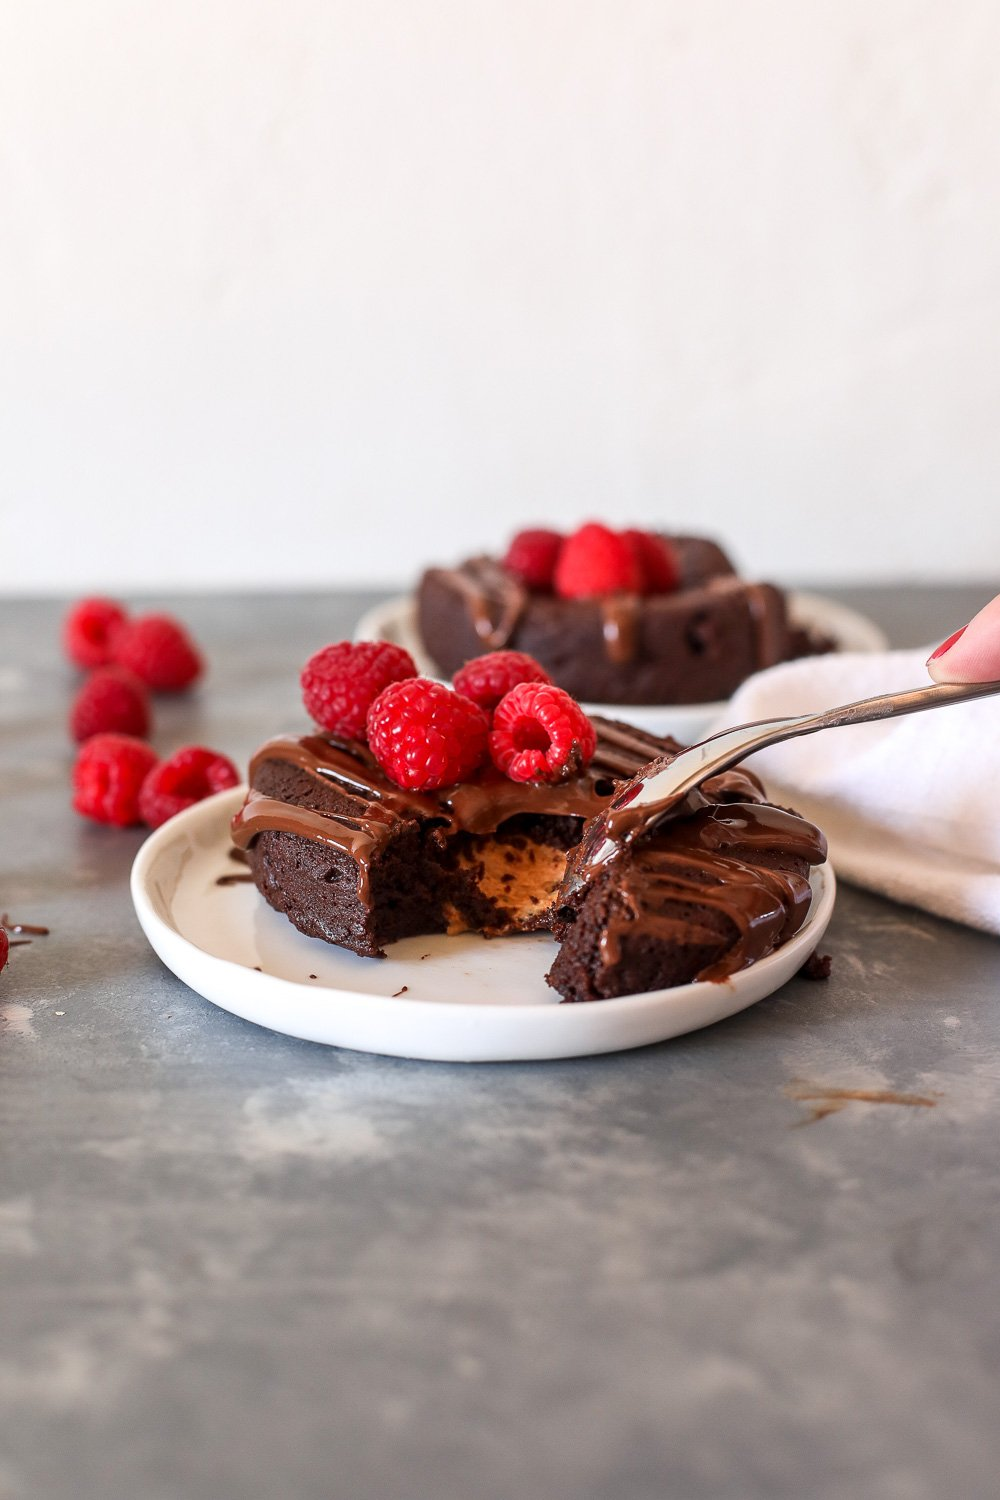 This Nut Butter Stuffed Chocolate Cake is grain free, dairy free and so decadent and delicious for valentine's day!